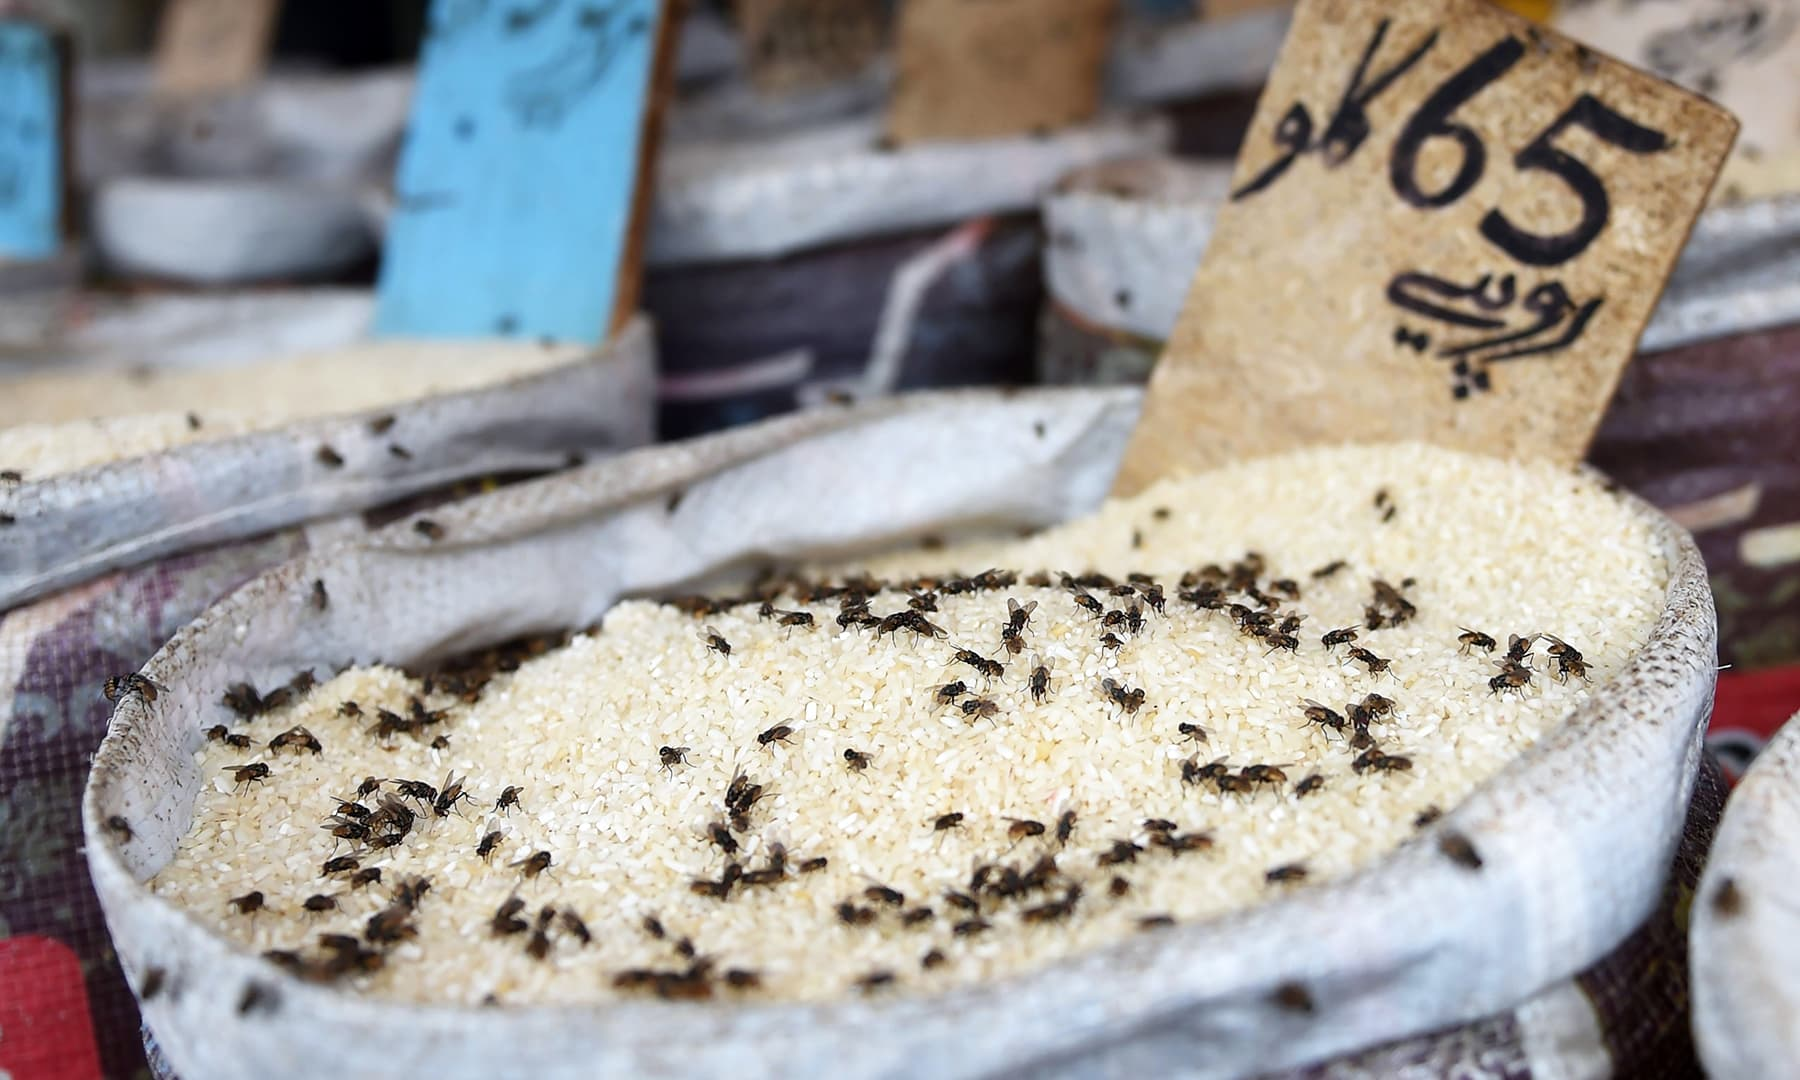 In this picture taken on August 31, 2019 flies sit on rice being sold at a market in Karachi. — AFP